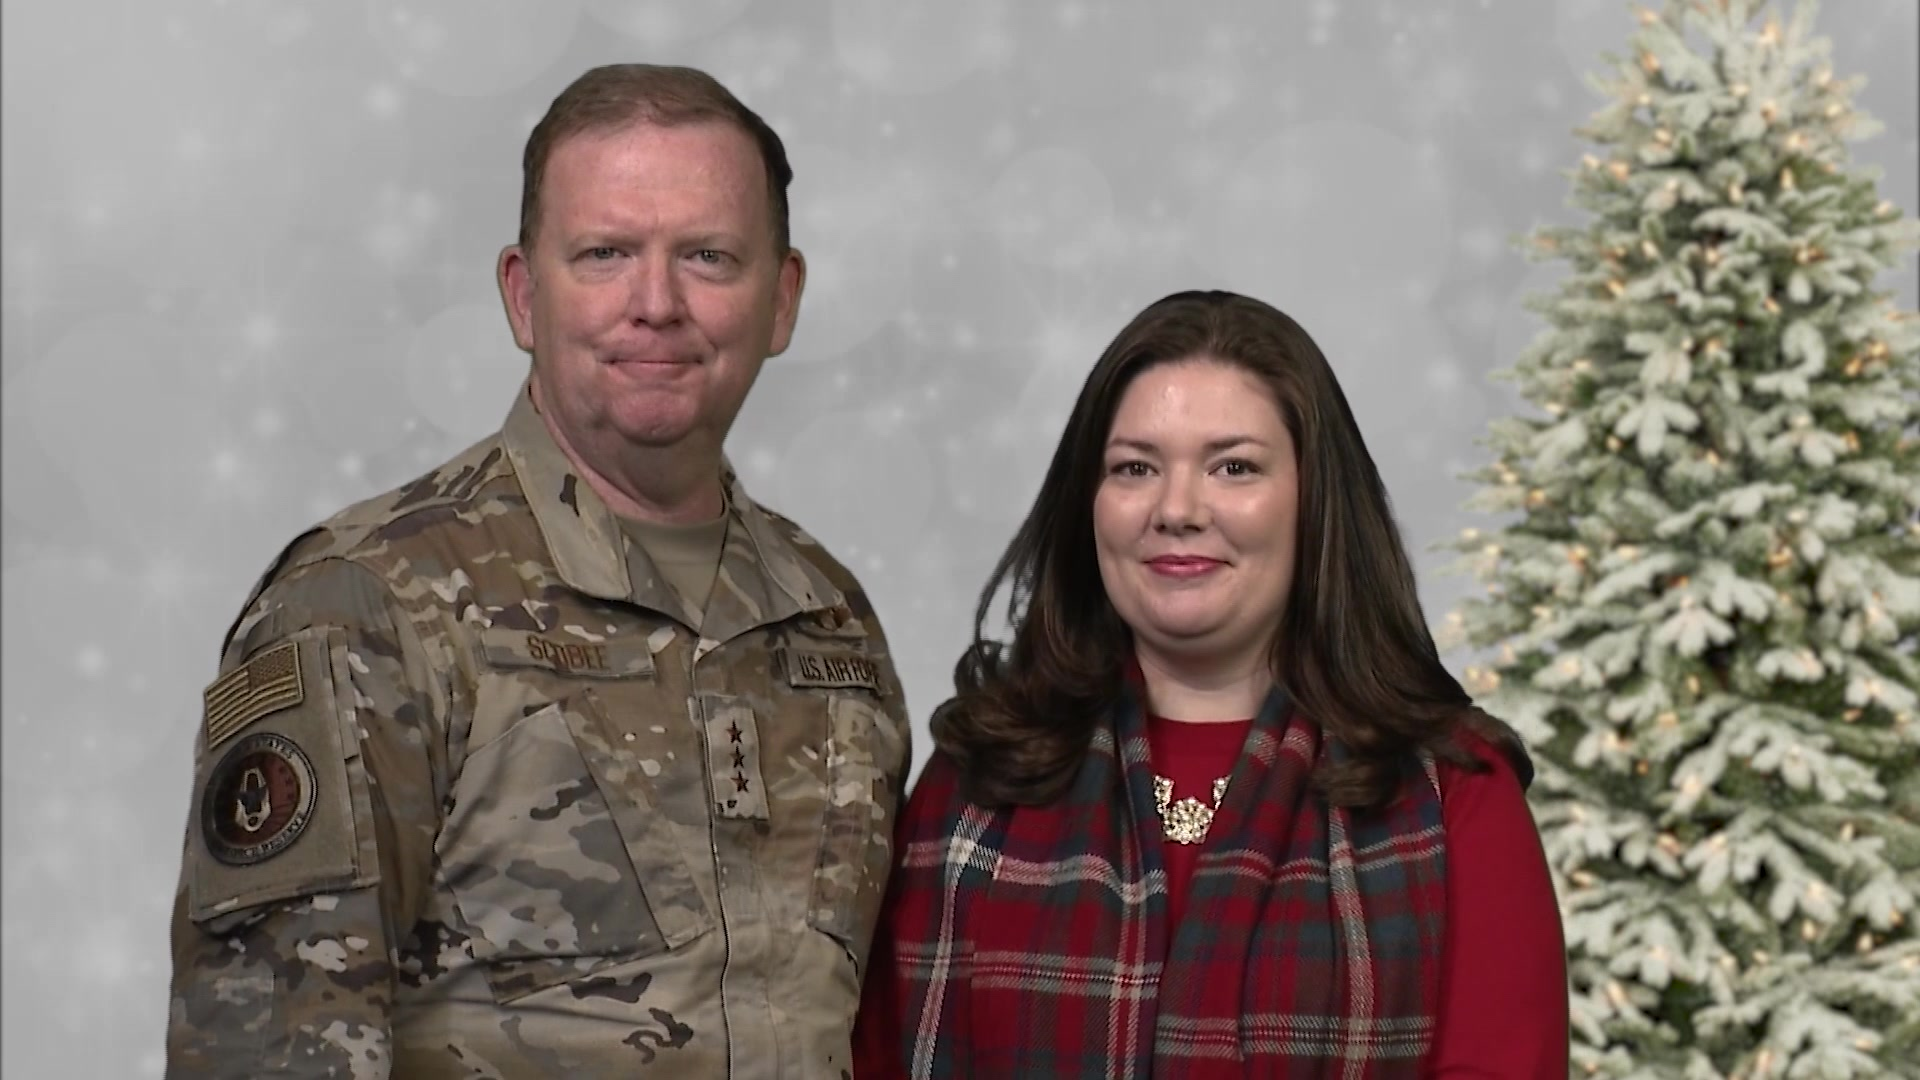 Video of commander, Air Force Reserve Command, Lt. Gen. Richard Scobee and his wife, Janis, sending holiday greetings to the men and women of Air Force Reserve Command and to those reservists deployed around the world this holiday season.